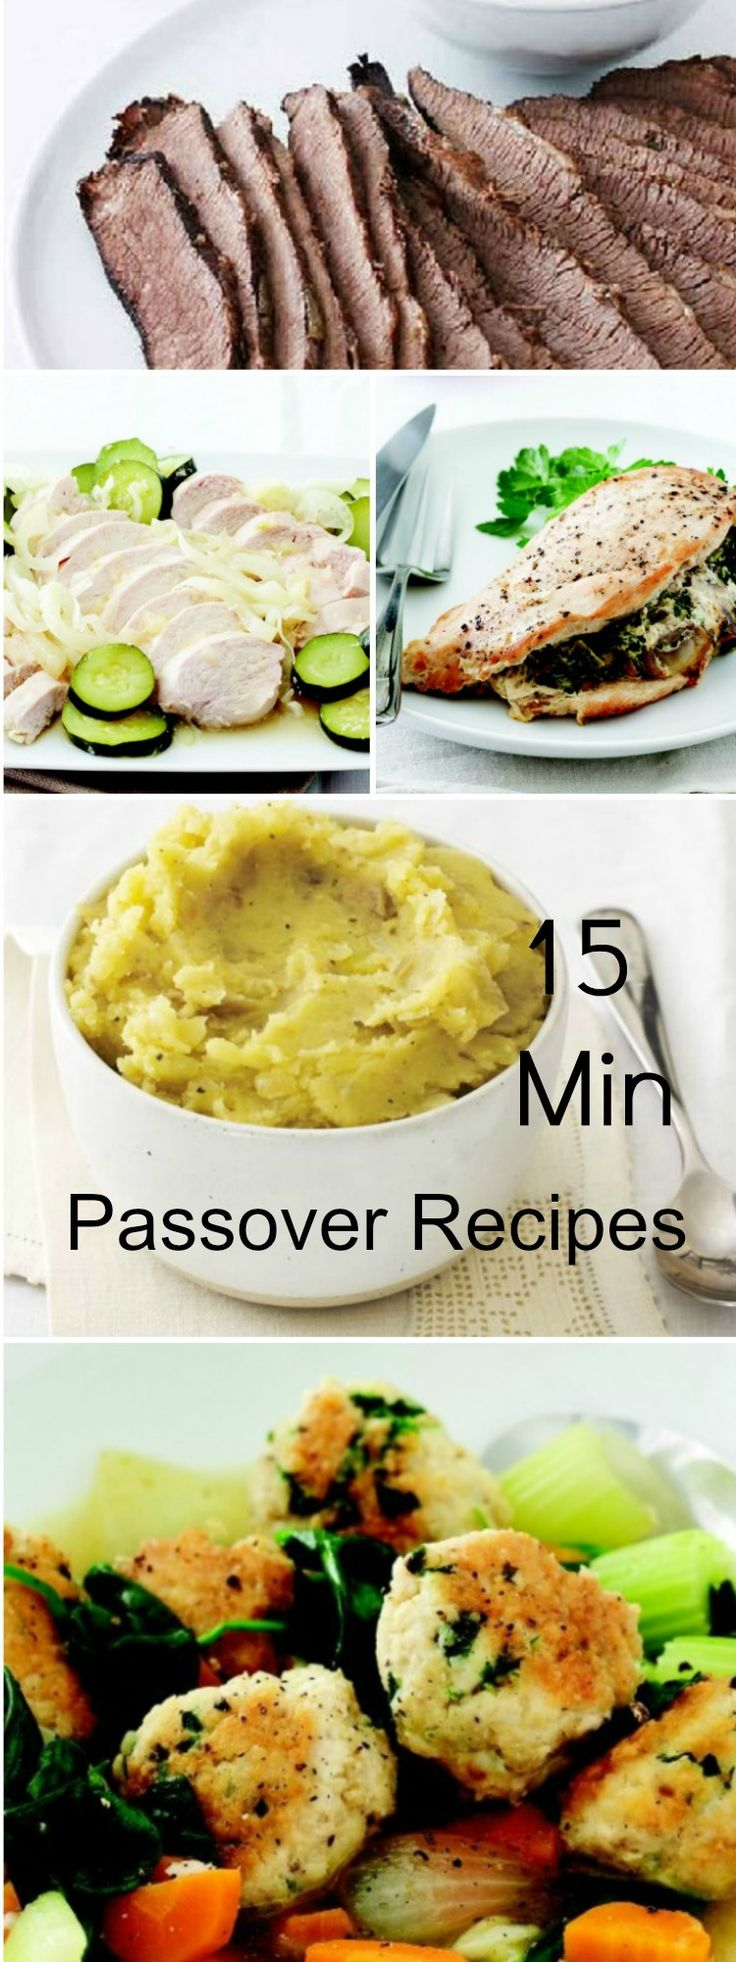 Mix N Match Passover Meal Ideas - Make Your Own Menu with 15 Minute Prep Recipes